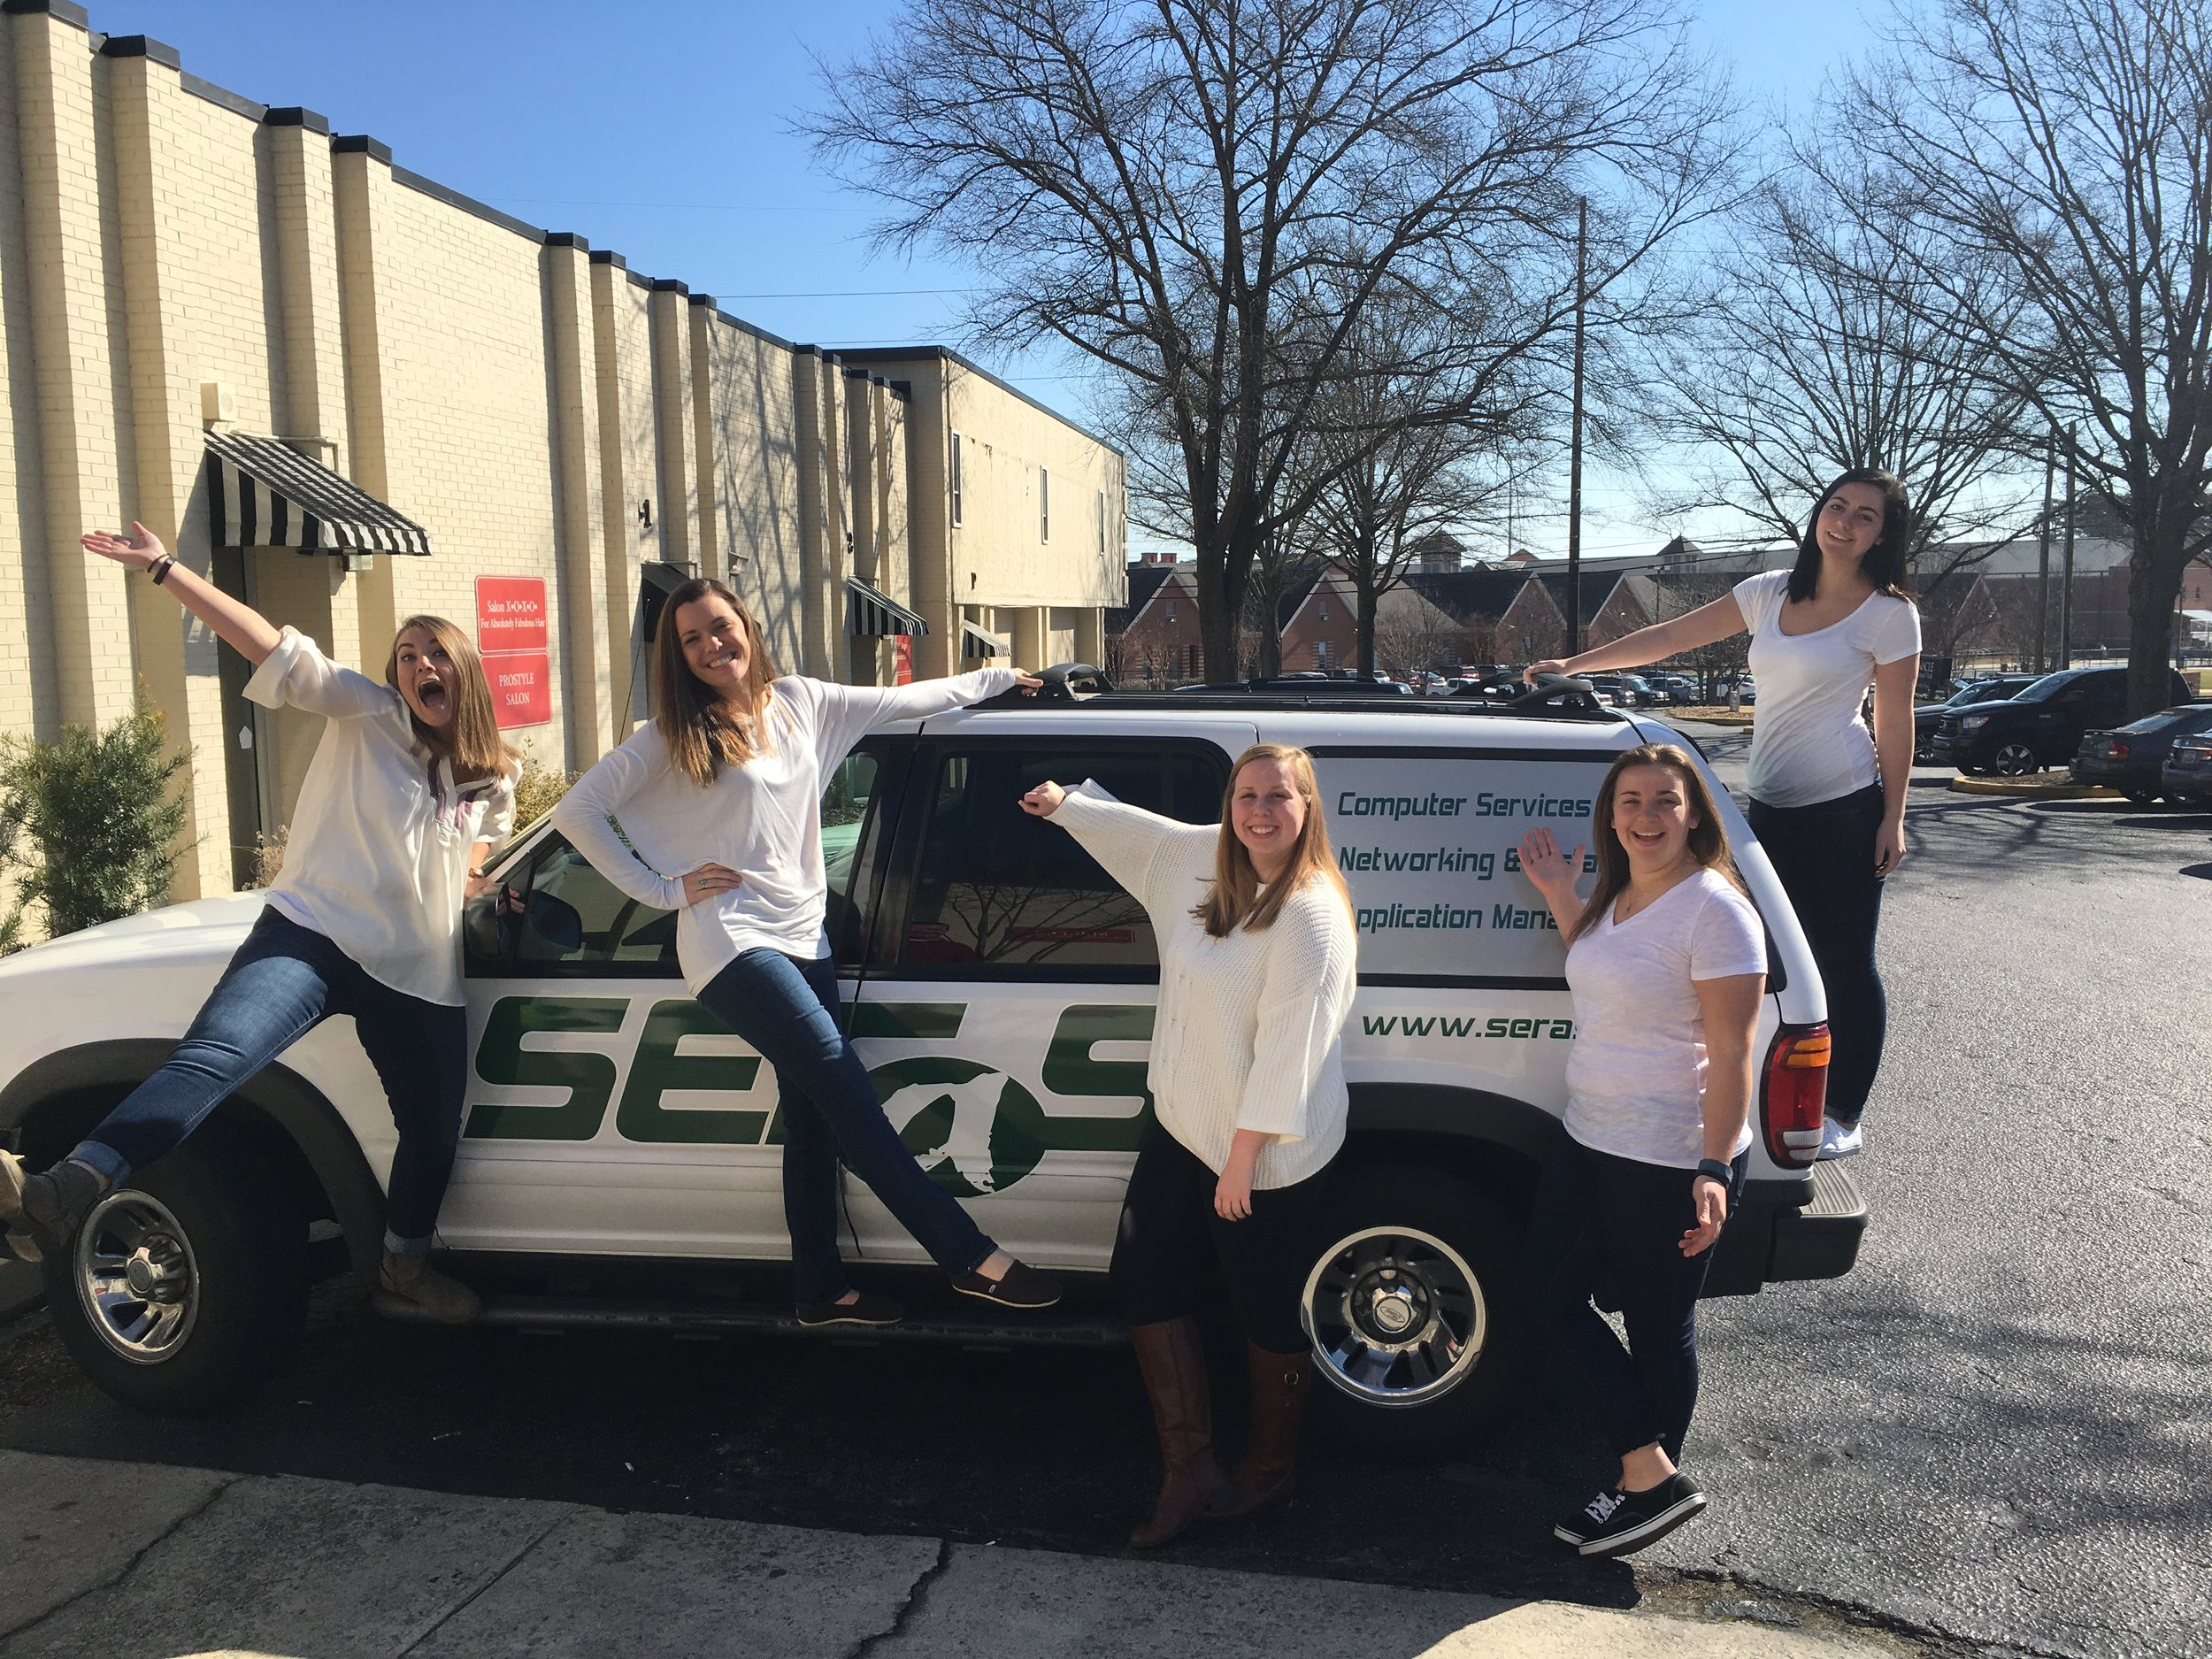 Some of our great Document Scanning Team posing in front of our Seras Vehicle.